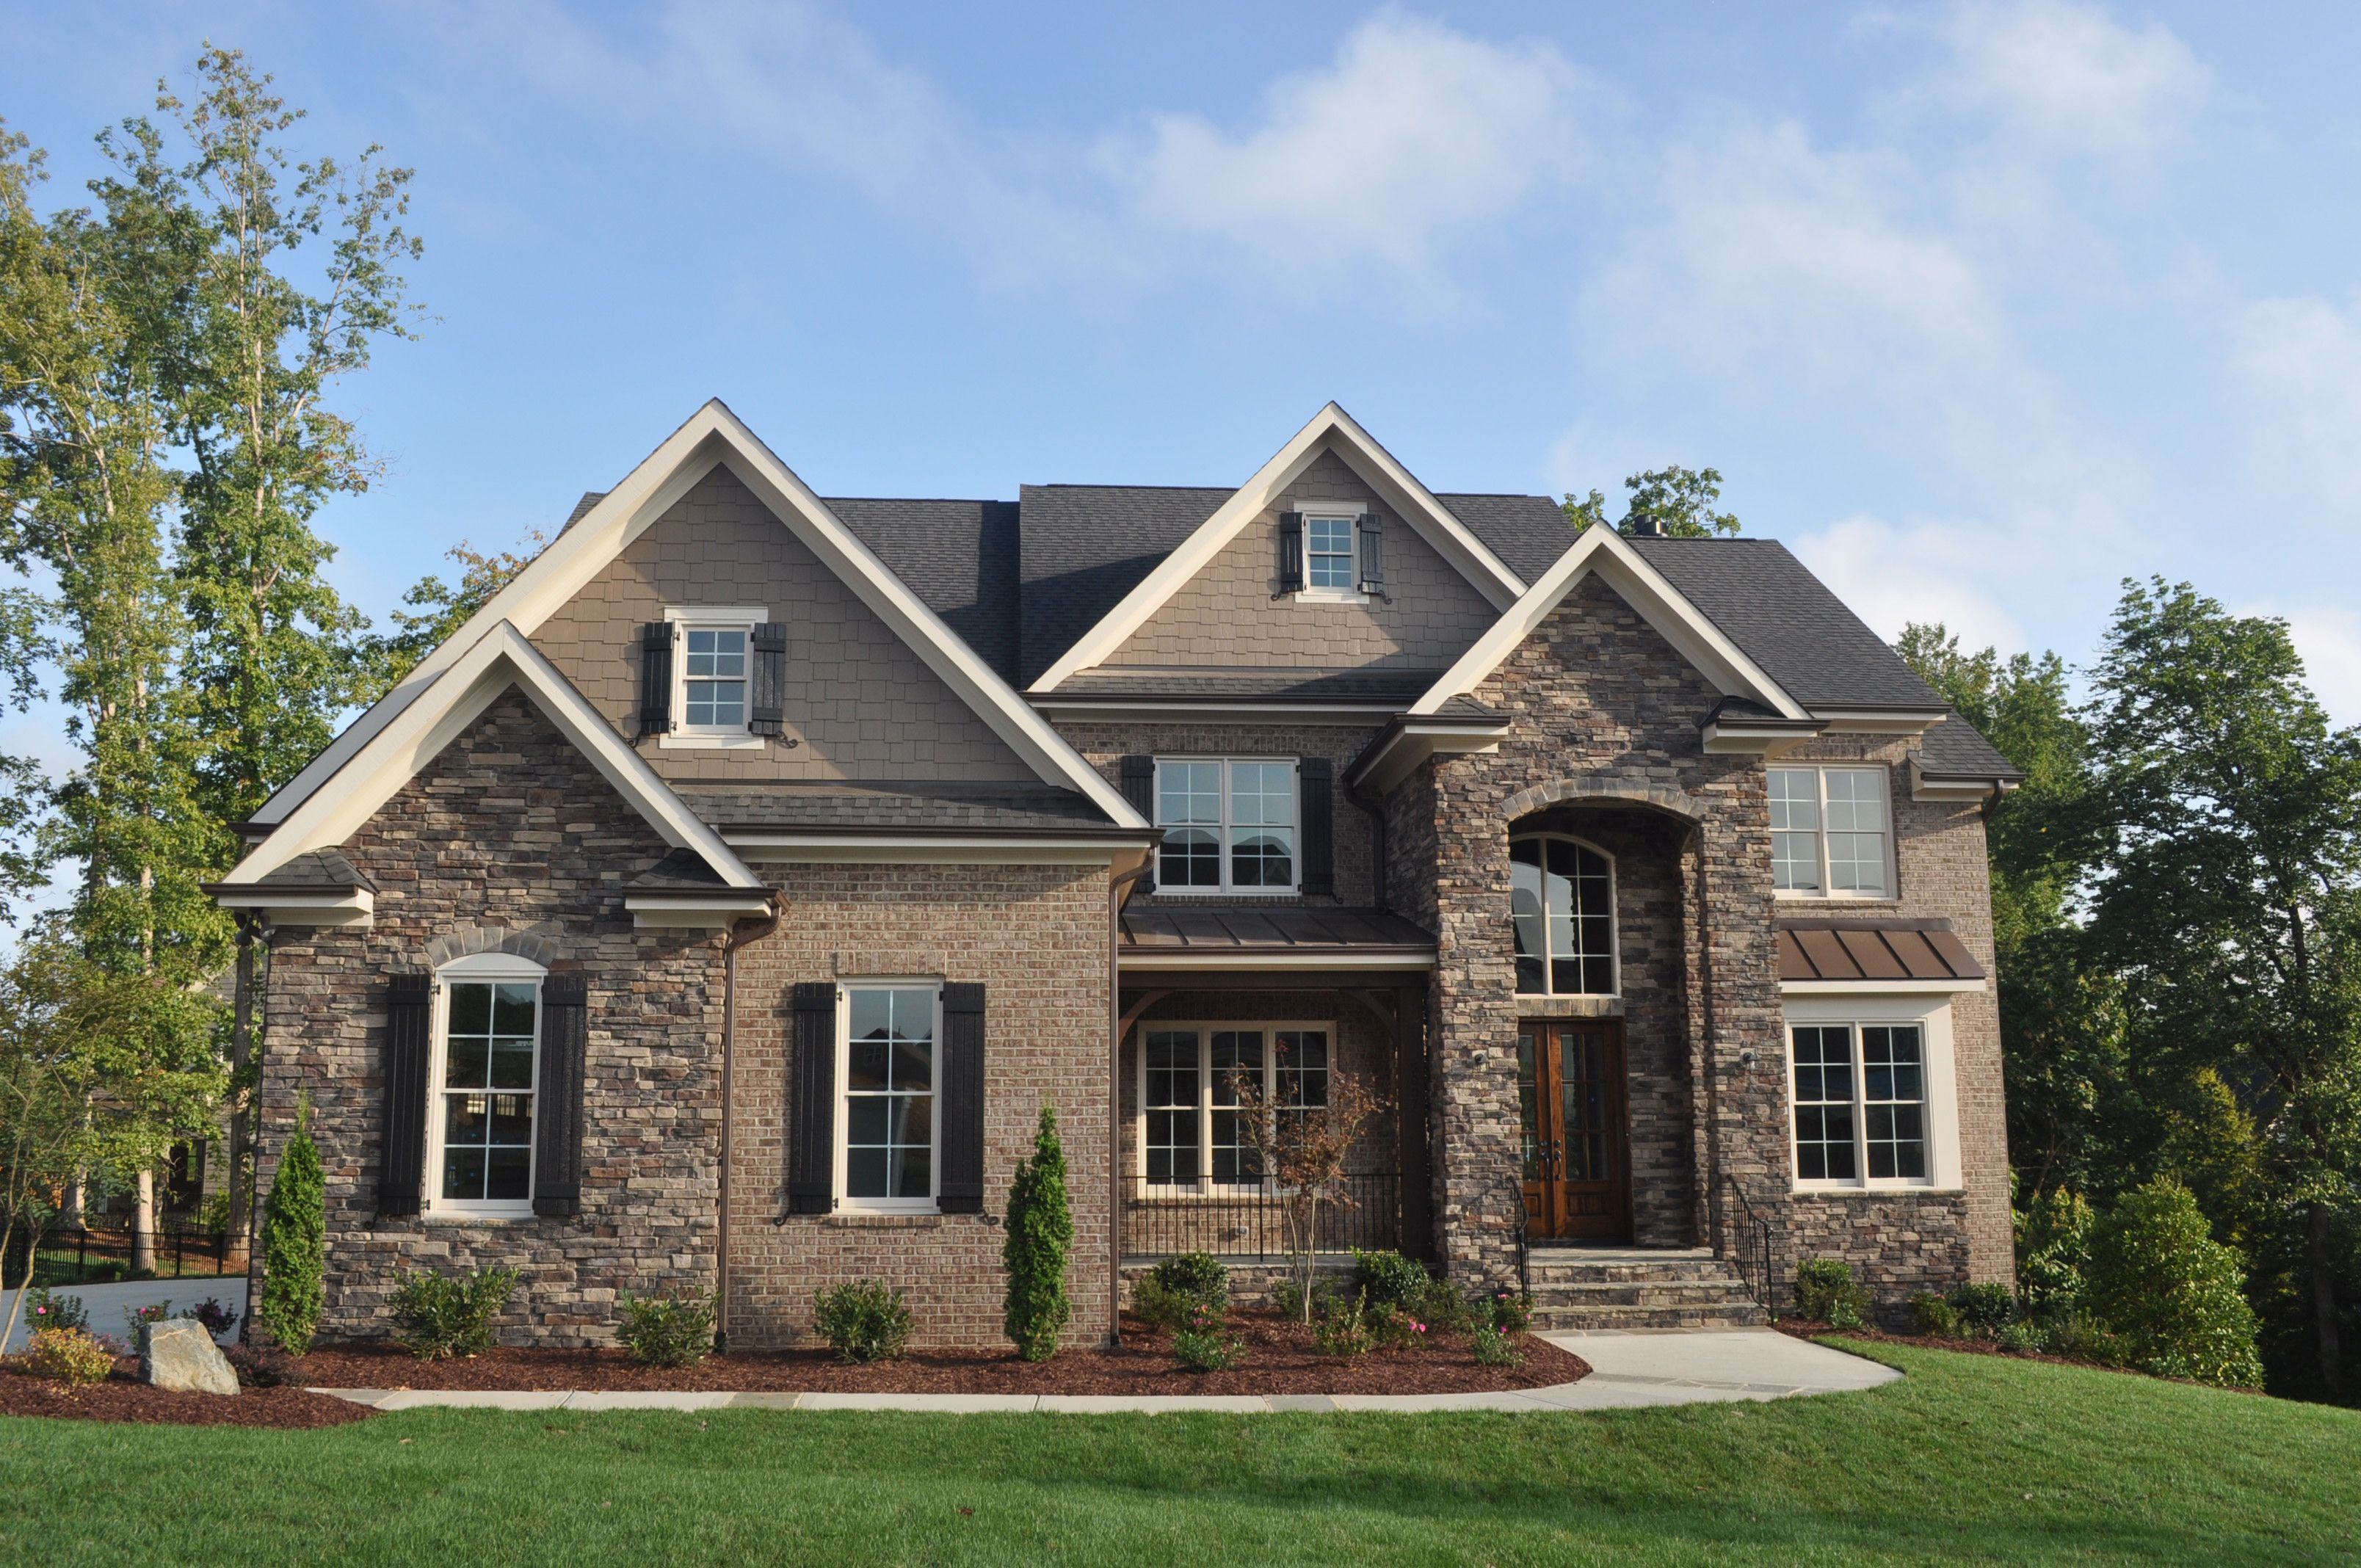 Brick and stone exterior with a little siding pinterest for House of granite and marble